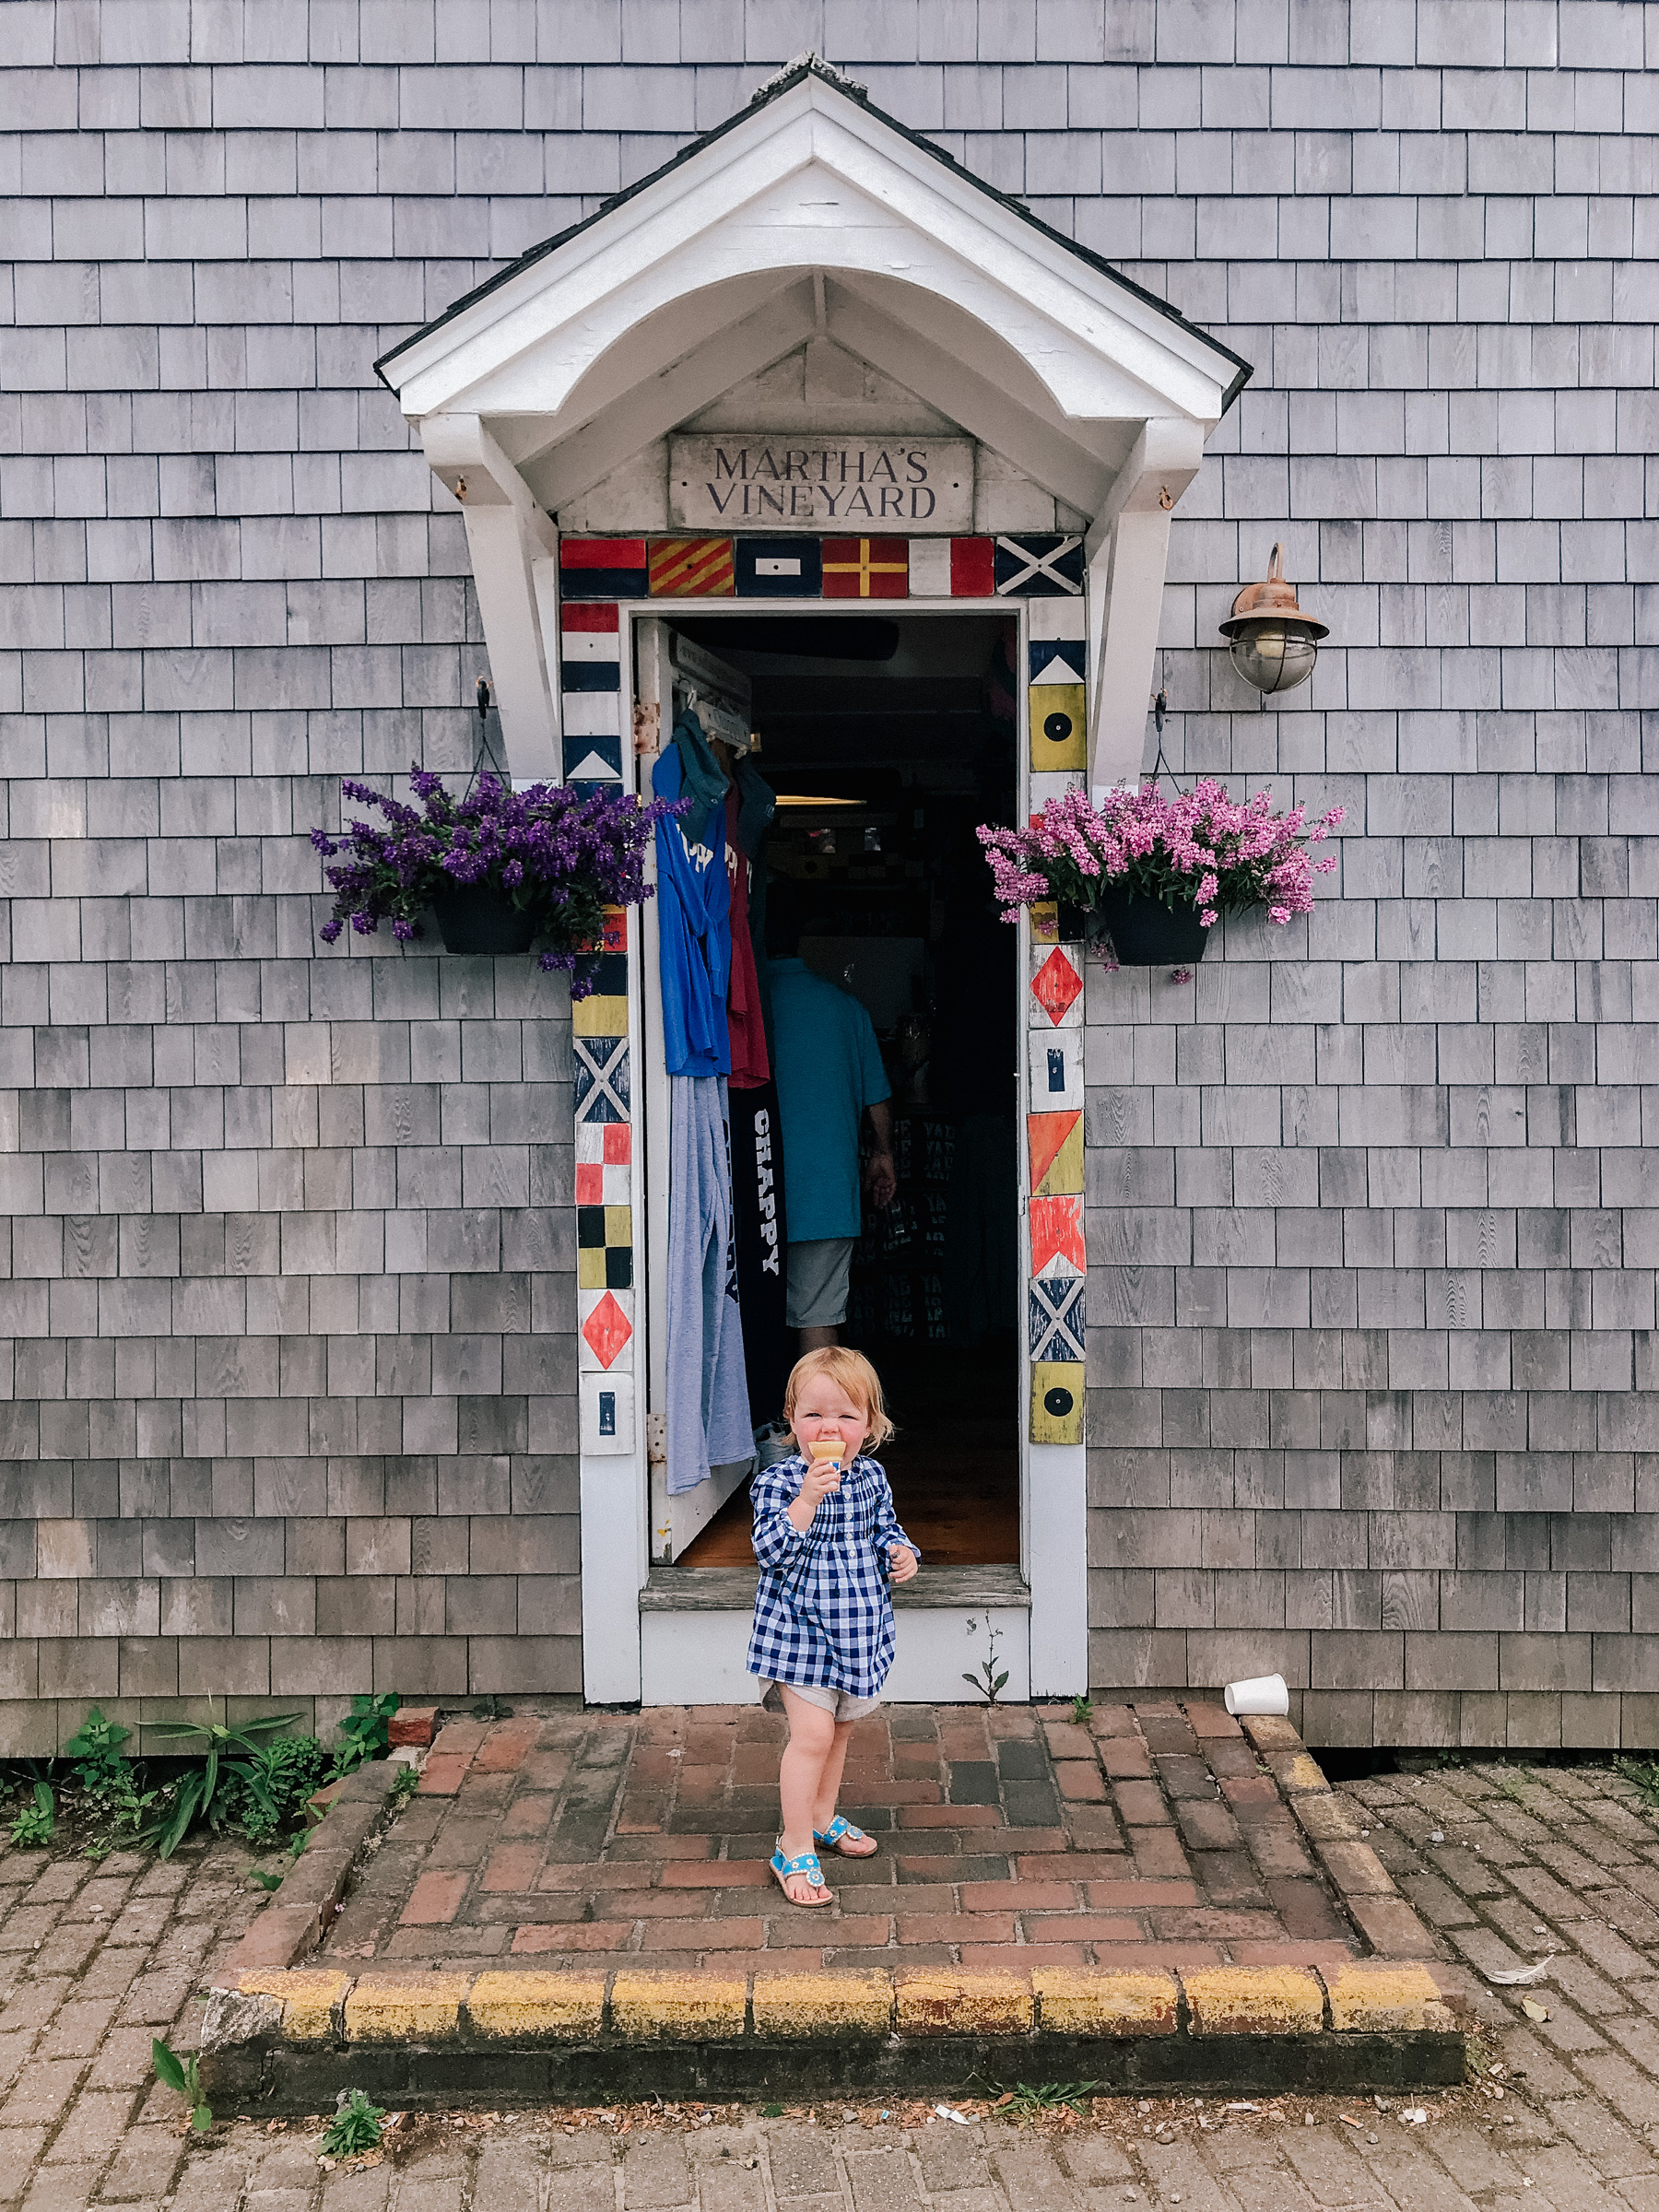 Afternoon in Edgartown